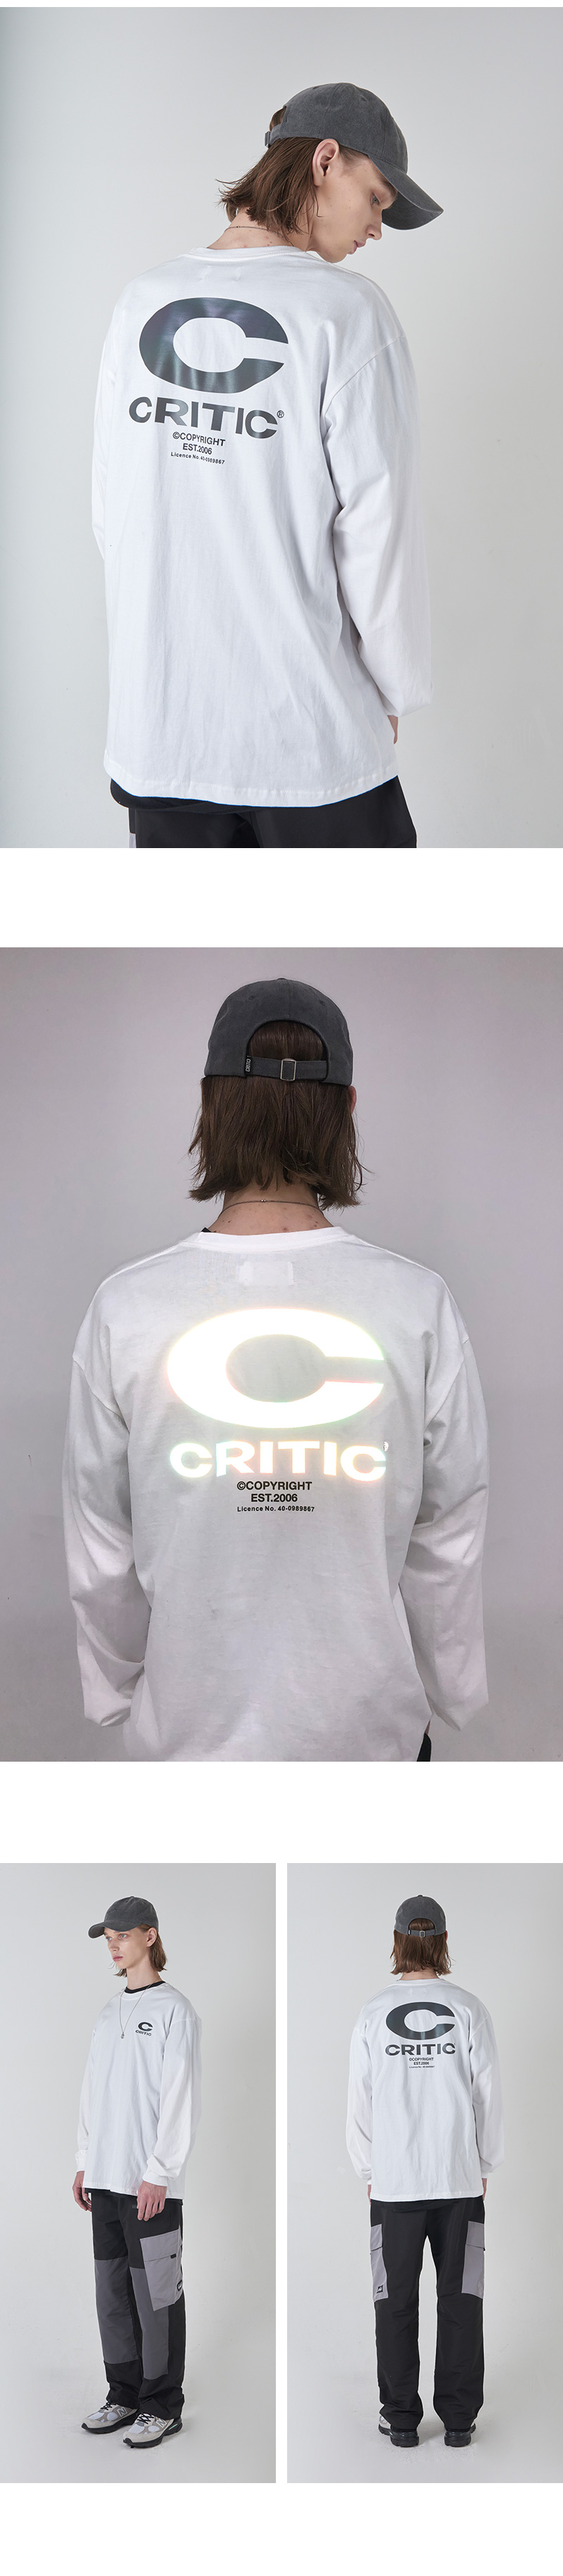 REFLECTIVE BIG C LOGO LONG SLEEVE T-SHIRT(WHITE)_CTONARL02UC2